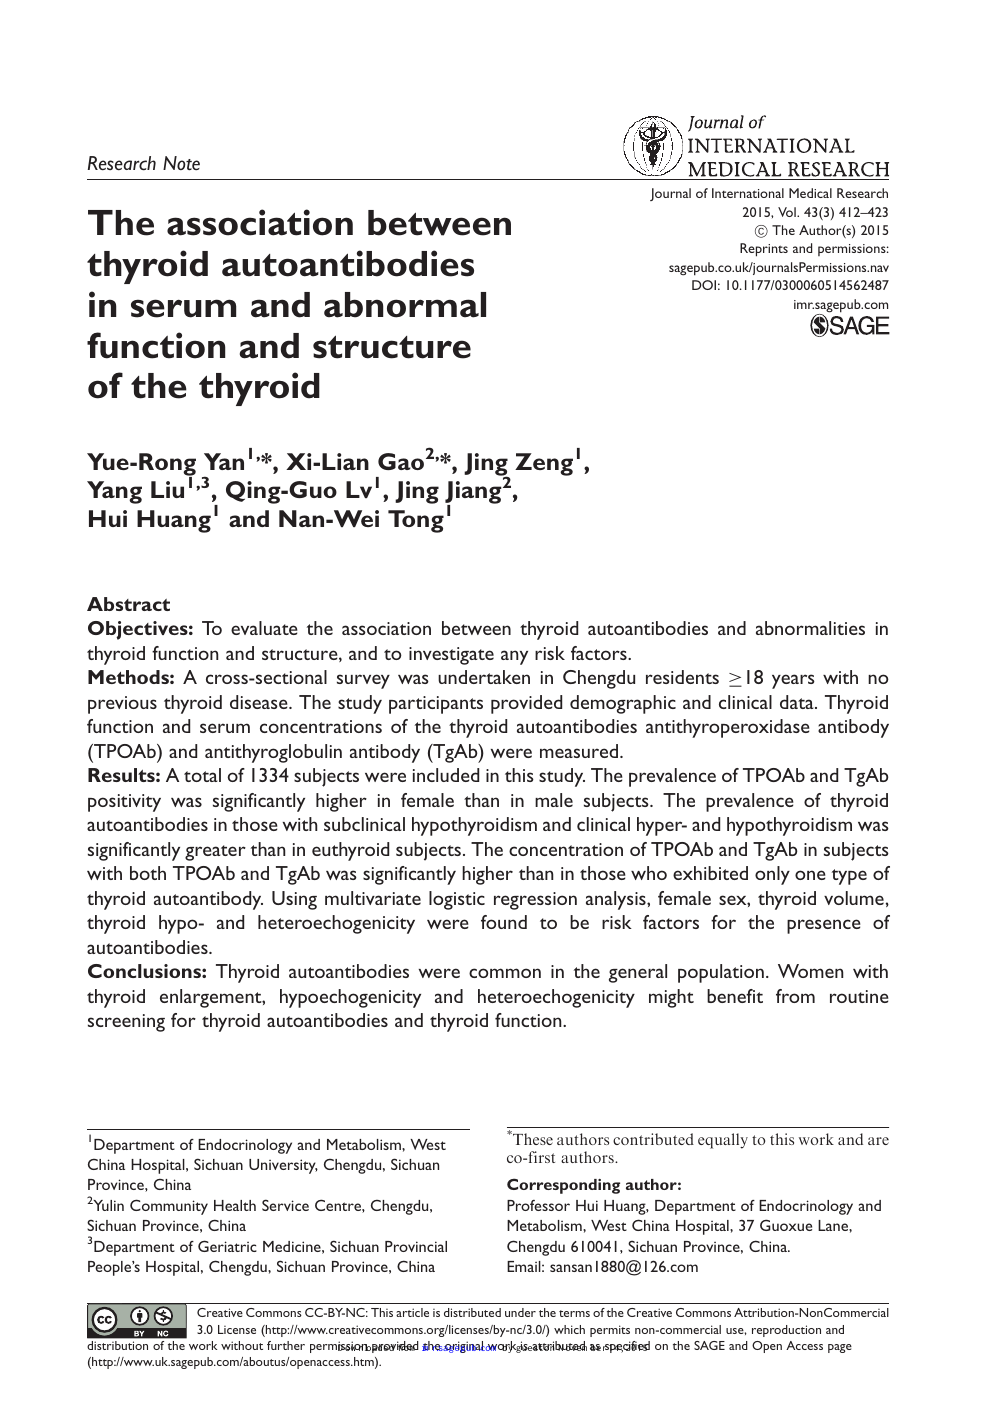 The association between thyroid autoantibodies in serum and